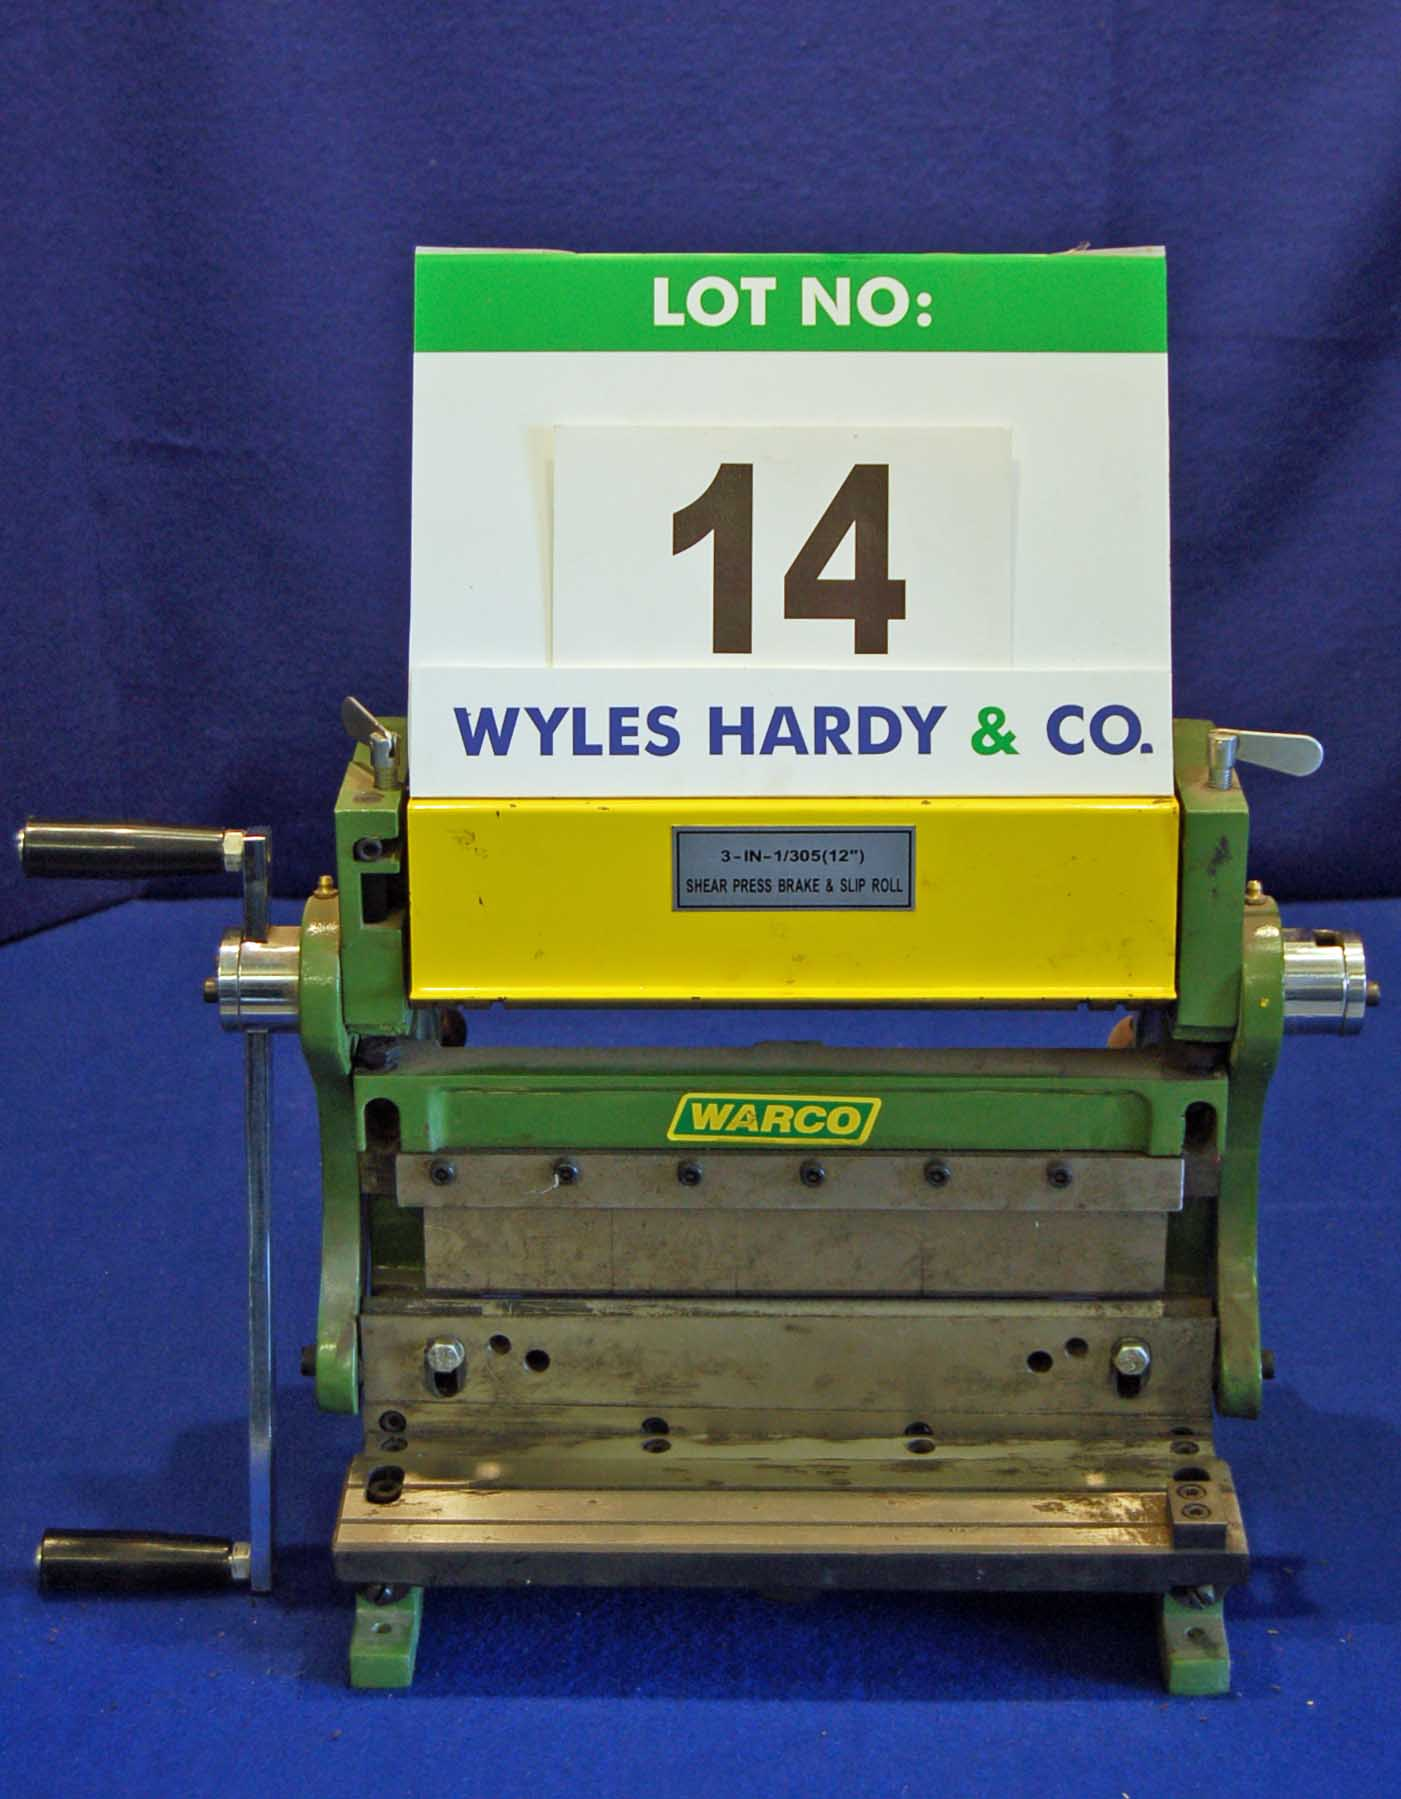 Lot 14 - WARCO Bench mounted Folder/Guillotine/Initial Pinch Pyramid Bending Rolls with Swage Ends